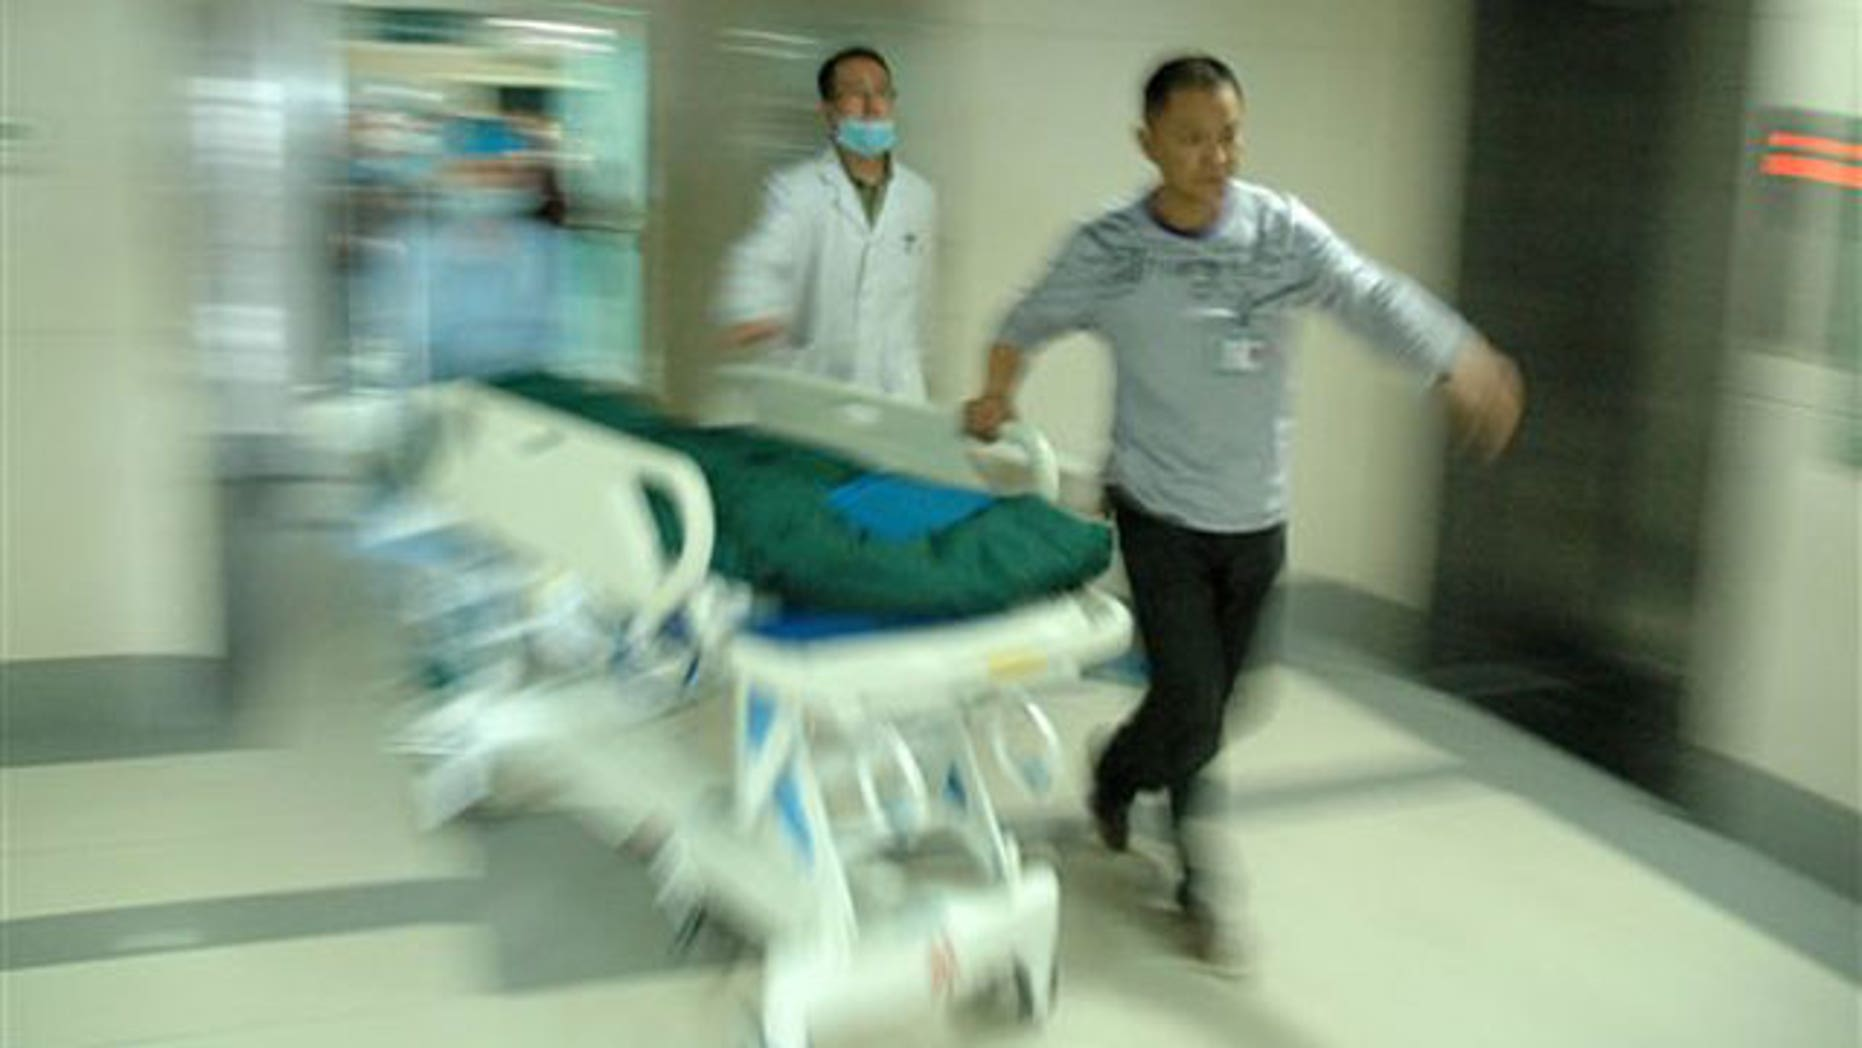 May 12: medical workers take an injured child to ICU at 3201 Hospital in Hanzhong City, northwest China's Shaanxi Province.